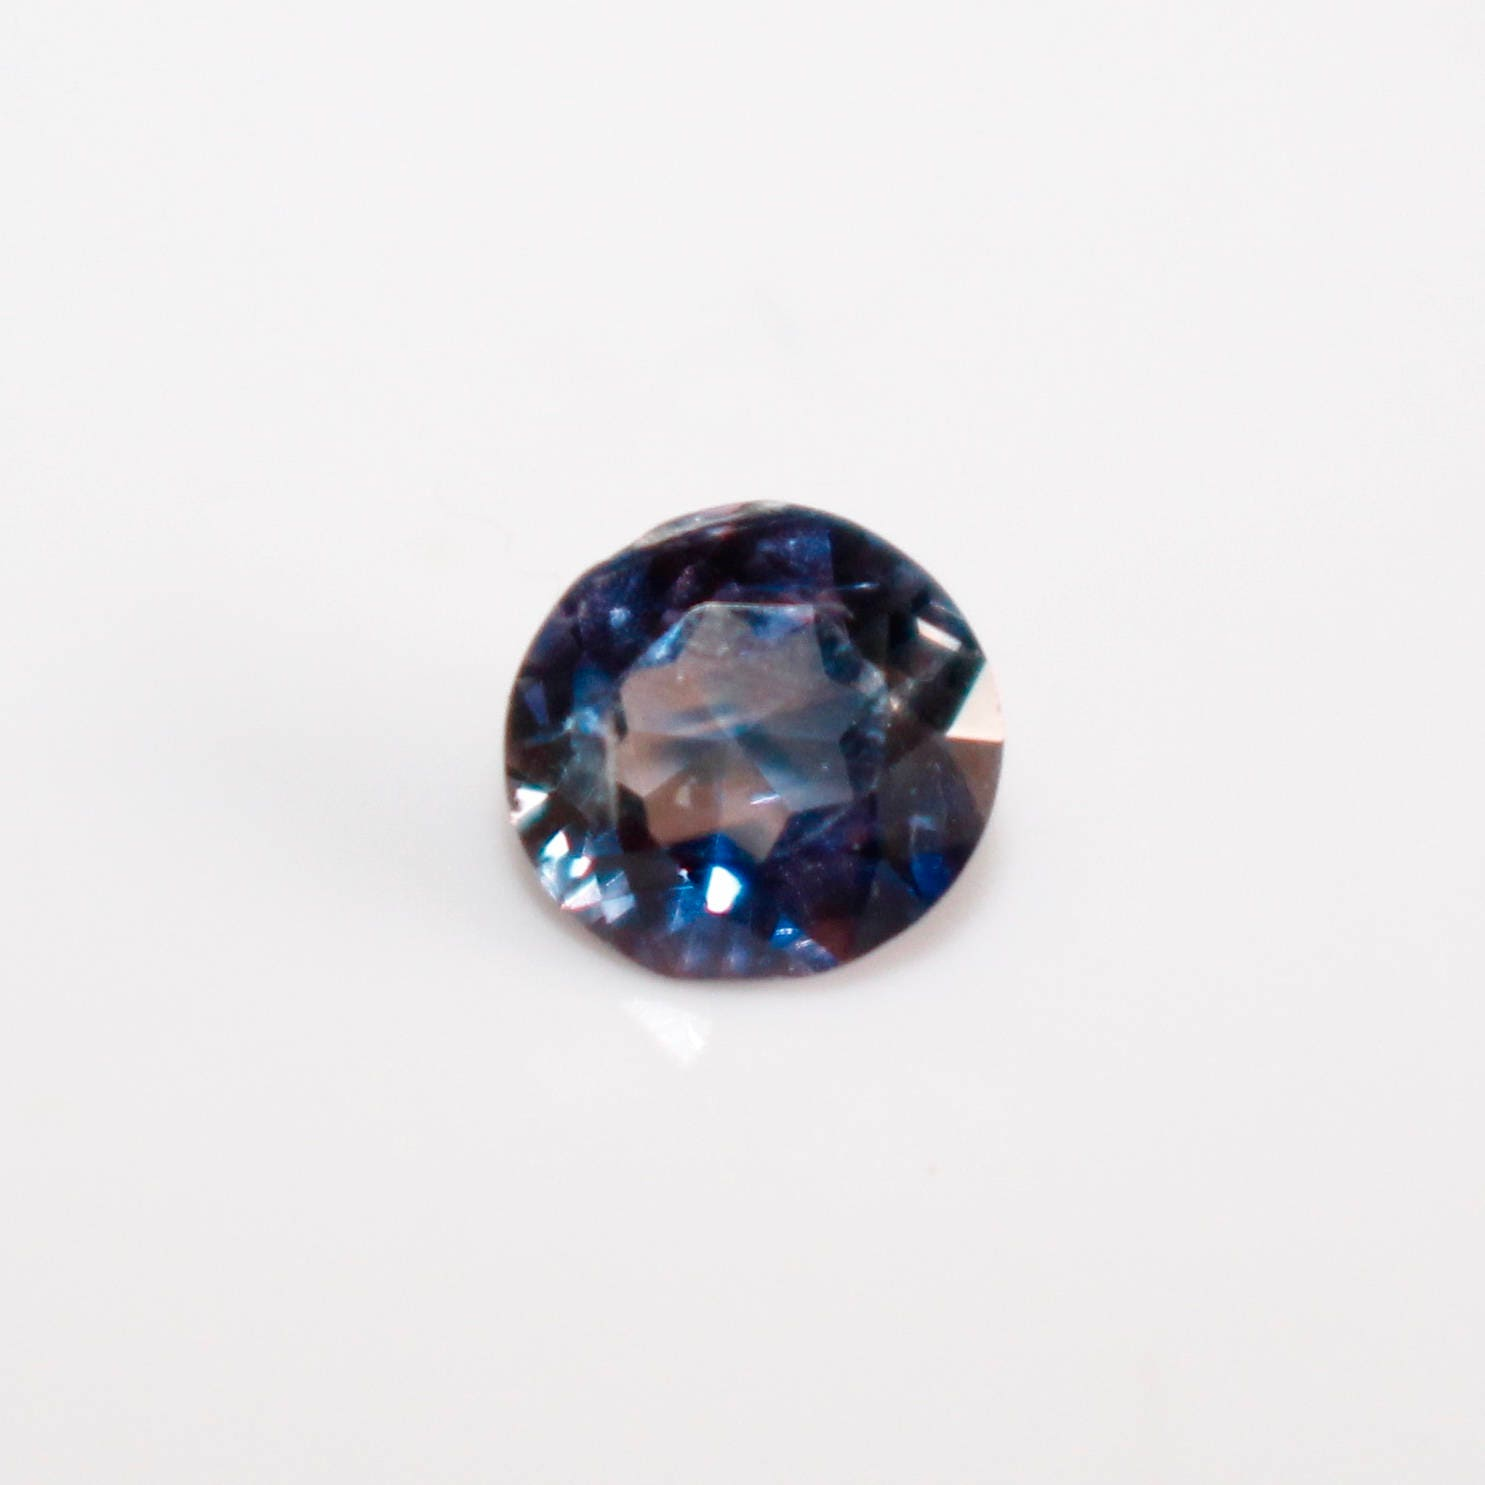 shop rare online handmade zoisite natural sapphire carats on item very